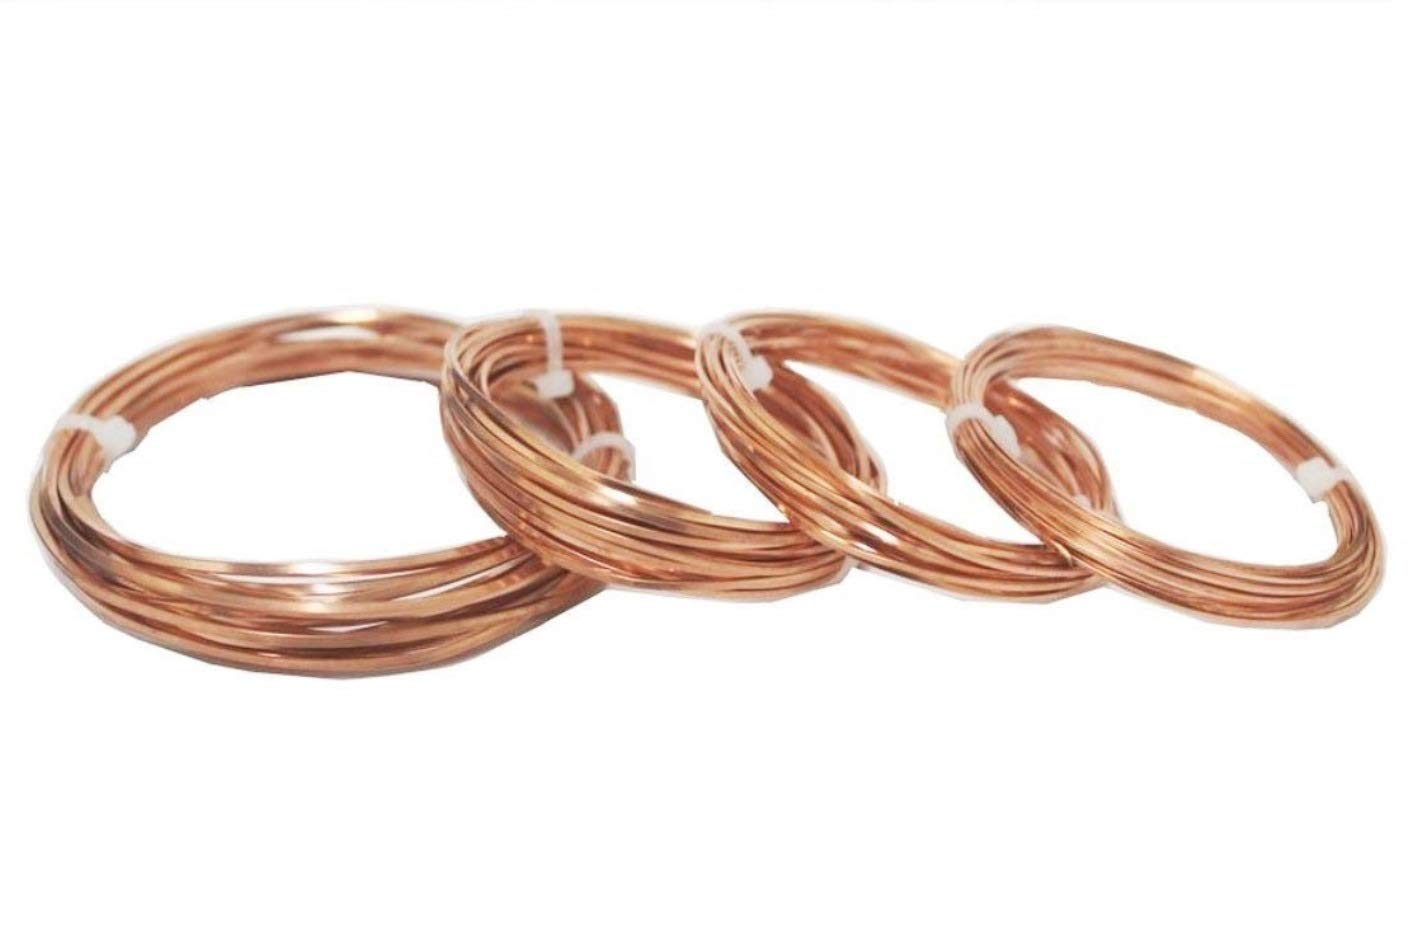 Modern Findings Assorted Square Copper Wire 10 Ft each size (Dead Soft) by Copper Wire USA